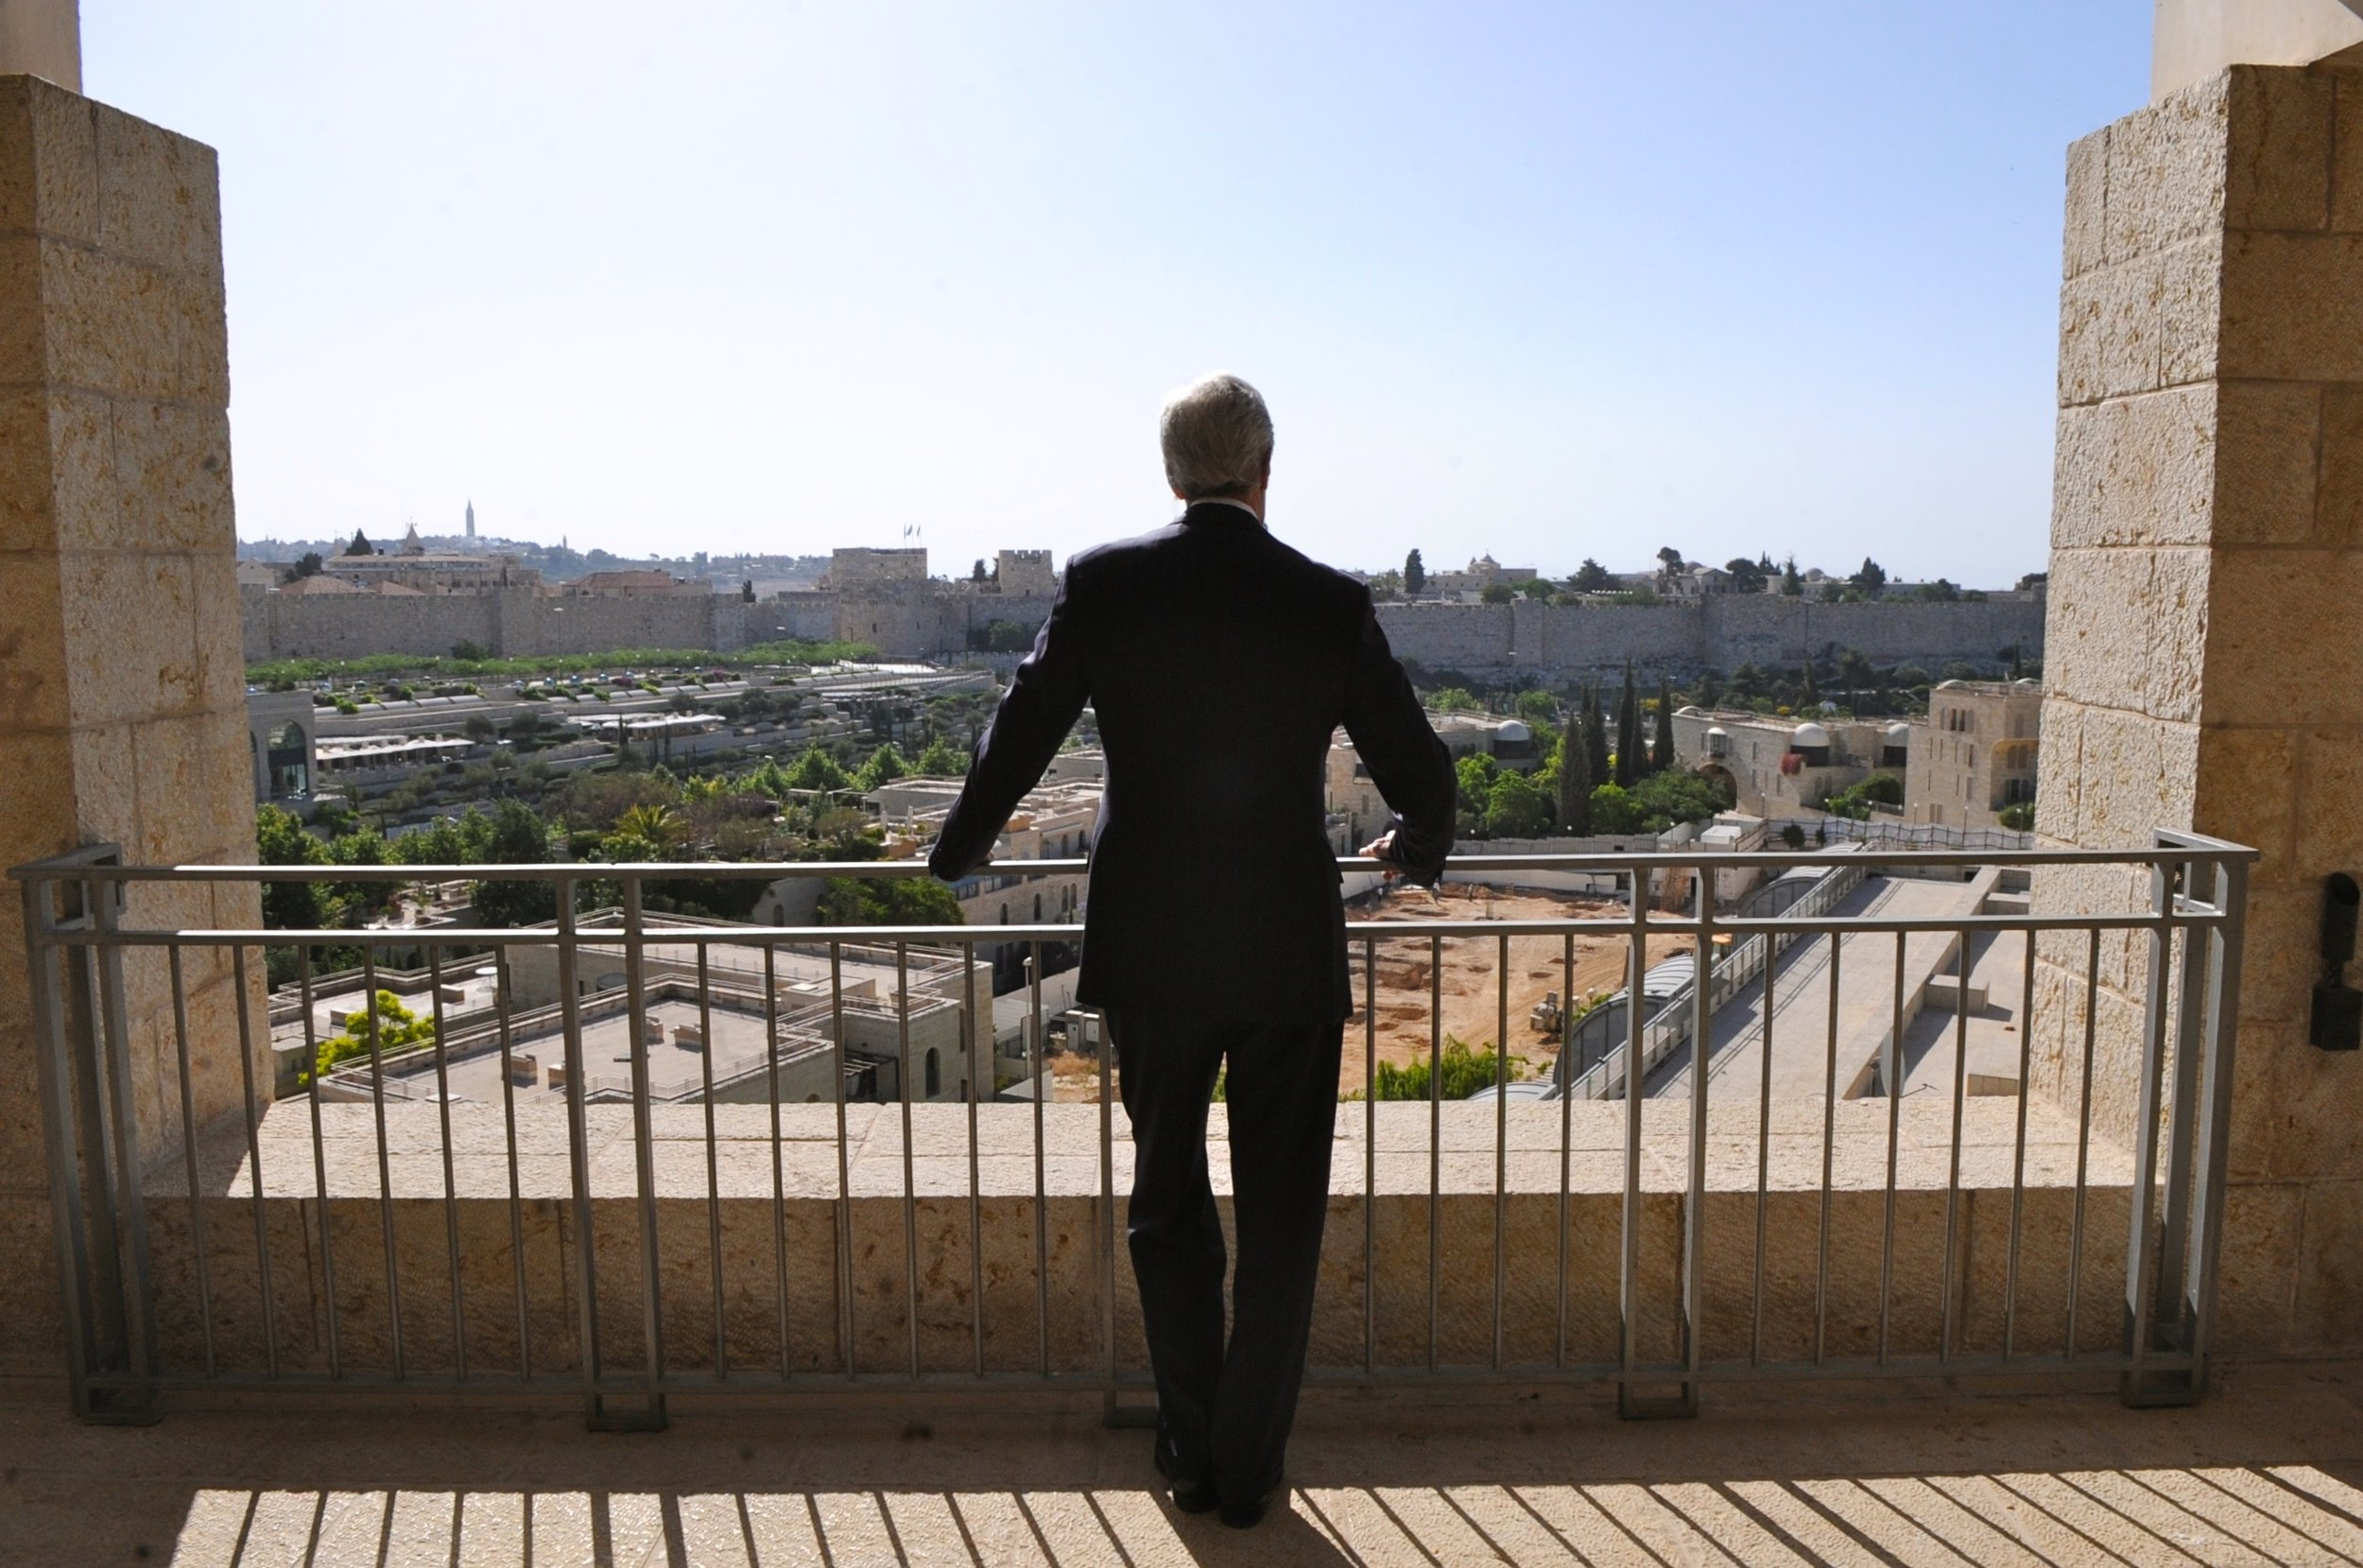 Secretary Kerry looks out at the Old City of Jerusalem from the balcony of the Rabin Suite at the David Citadel Hotel.